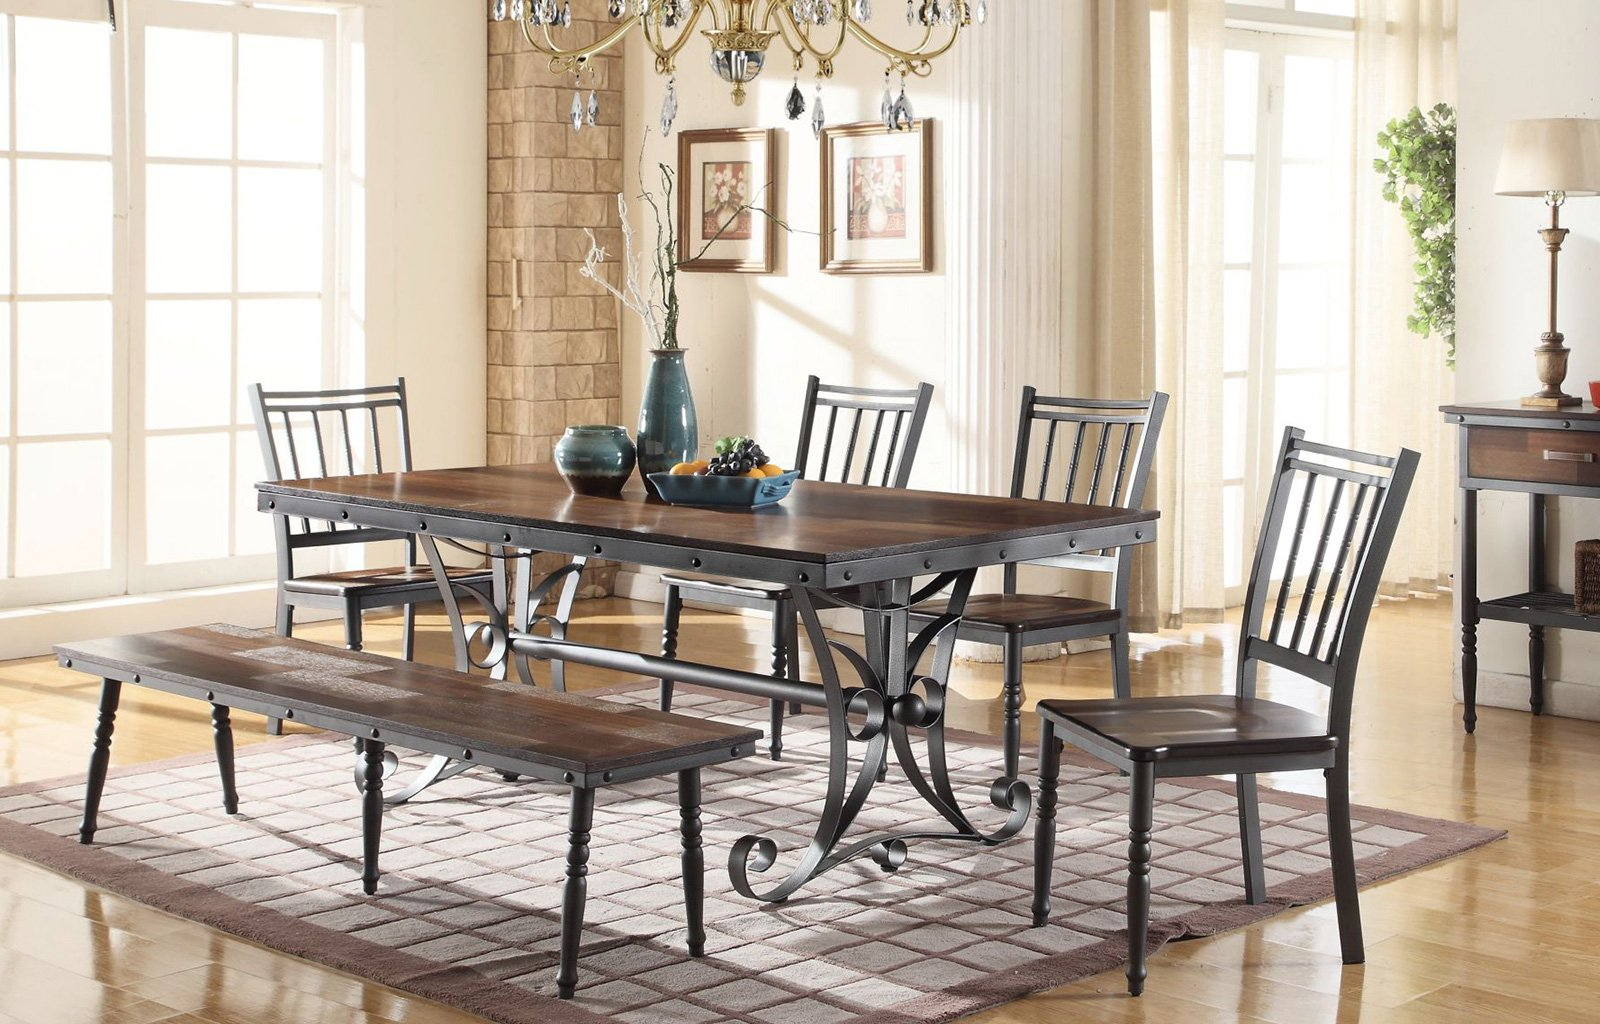 Brianna Table, Chairs & Bench Set